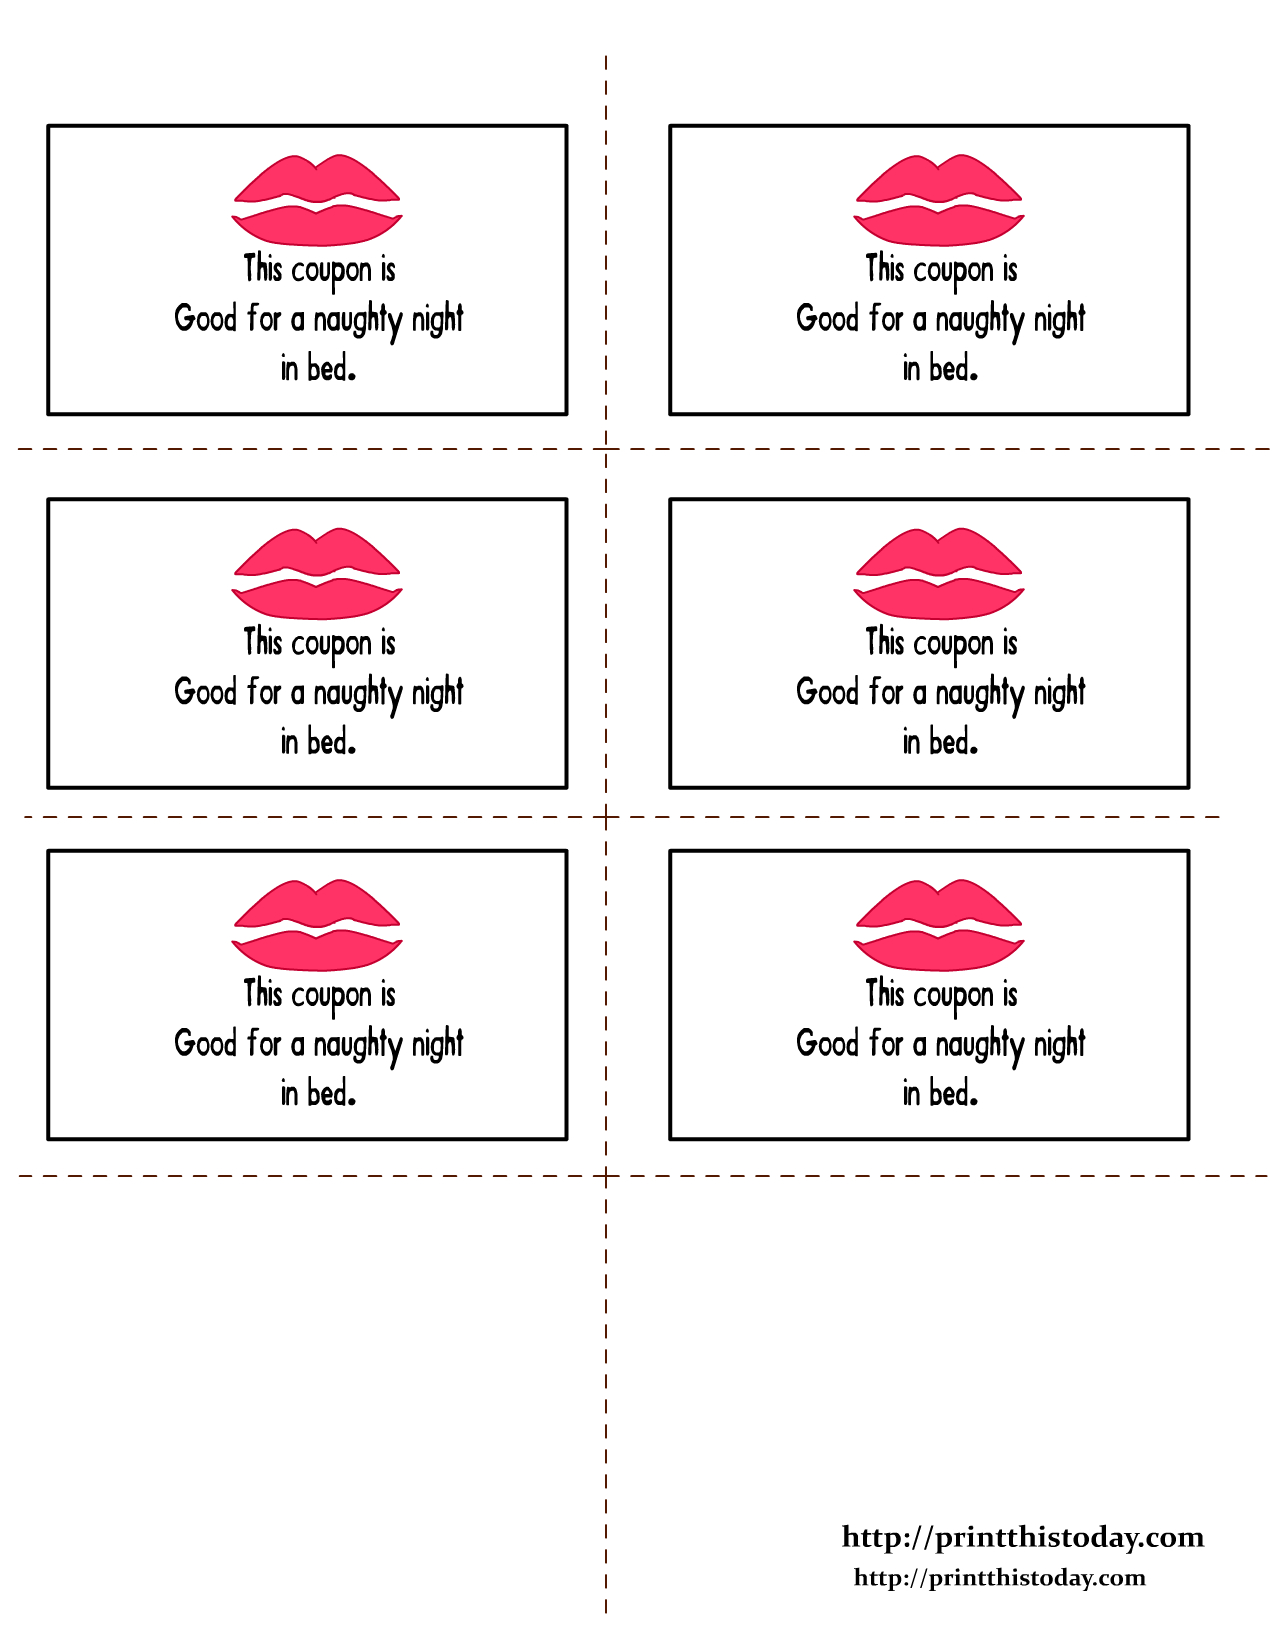 Romantic Love Coupon Printable | Romantic Love Coupons | Print This - Free Printable Coupons For Husband